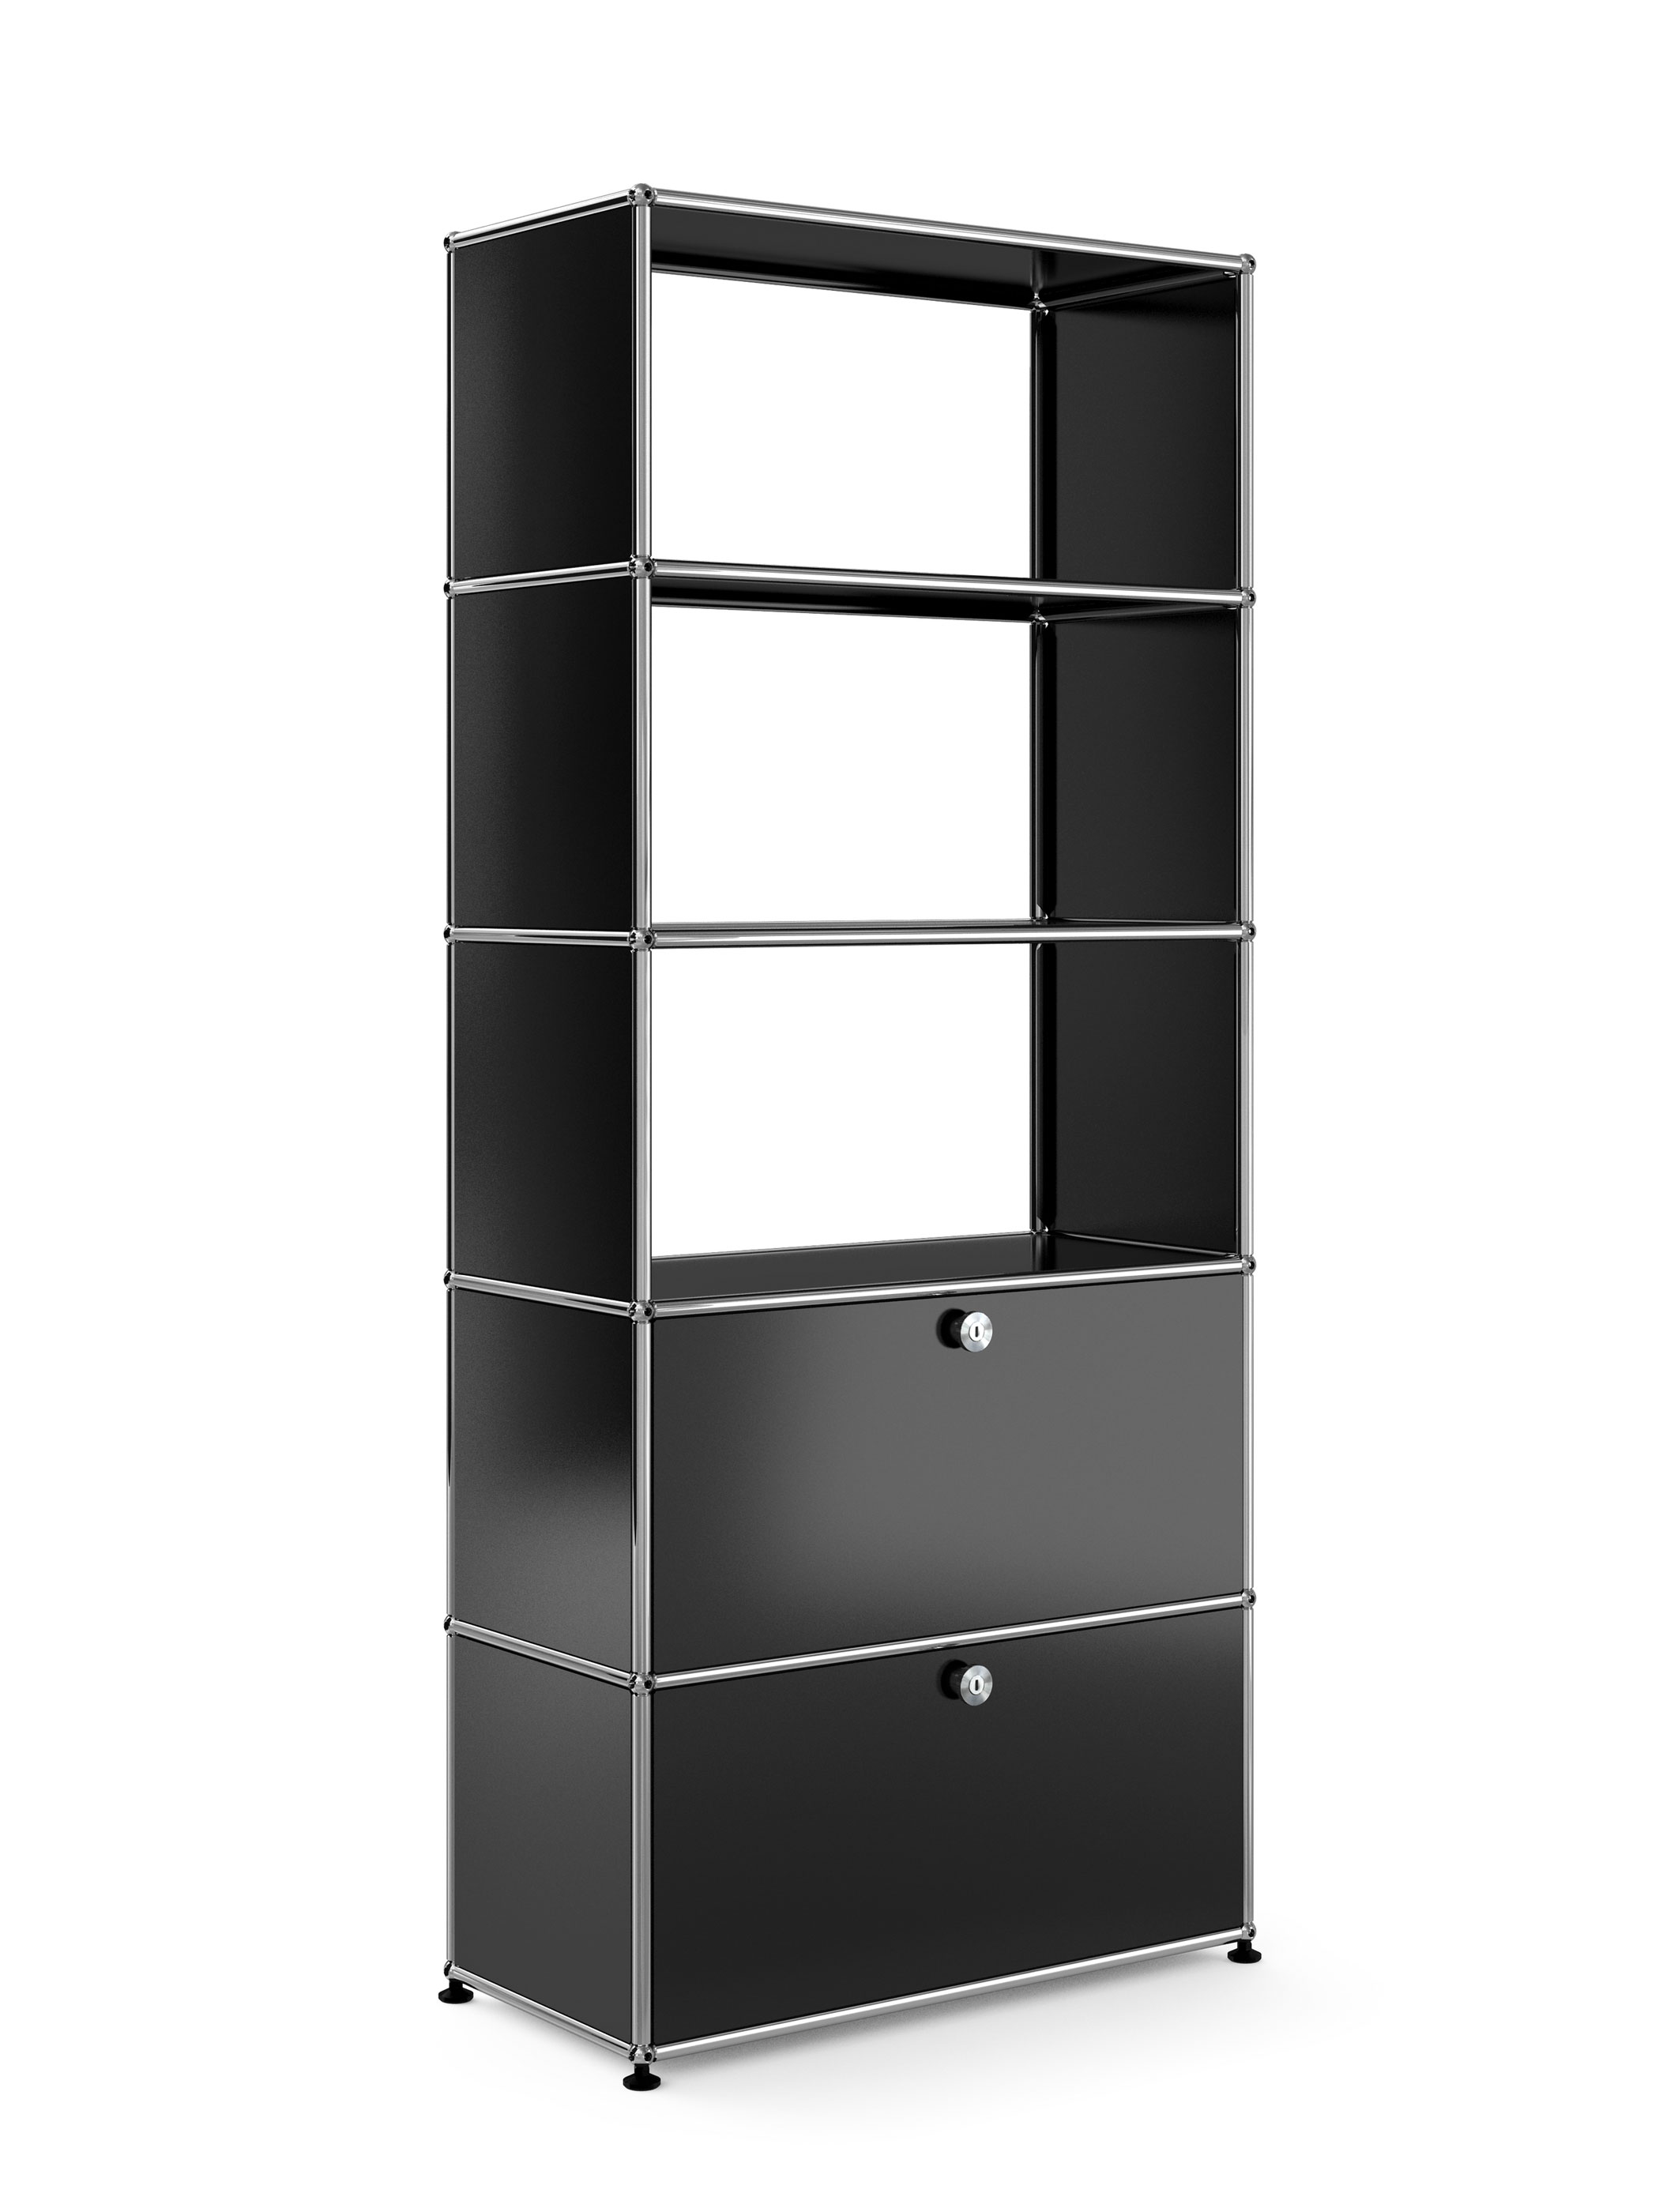 usm usm haller regal u3005 produktdetails. Black Bedroom Furniture Sets. Home Design Ideas